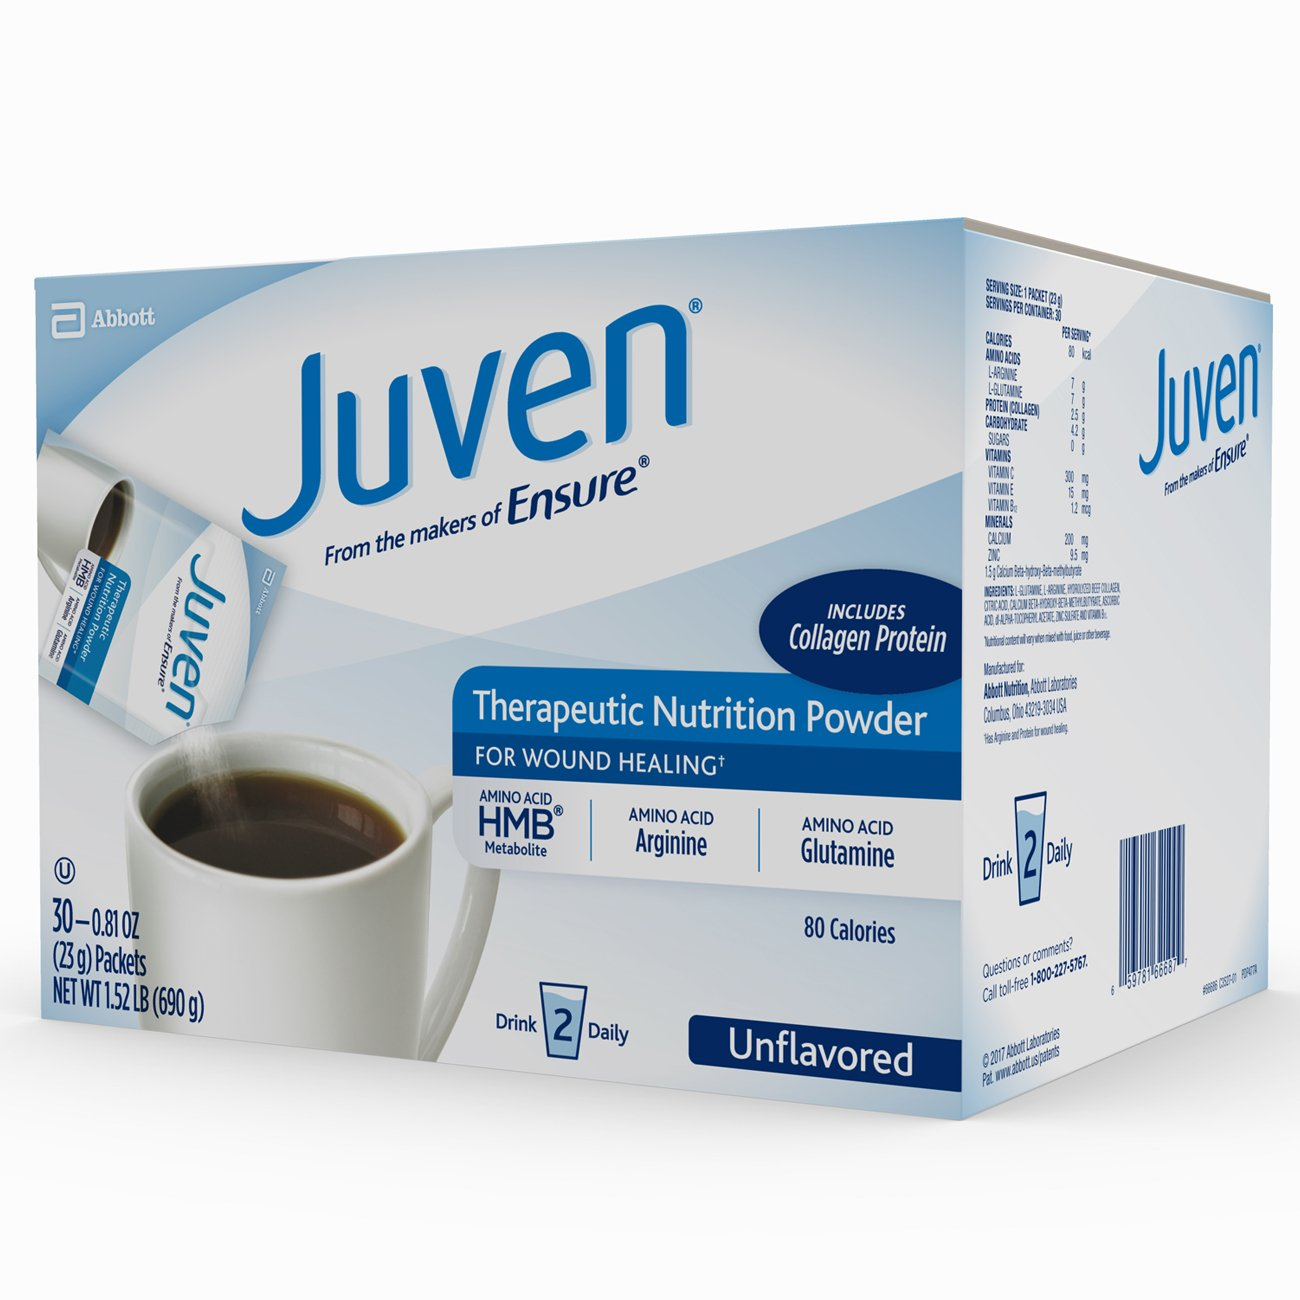 Juven Therapeutic Nutrition Drink Mix Powder for Wound Healing Includes Collagen Protein, Unflavored, 30 Count by Juven (Image #9)